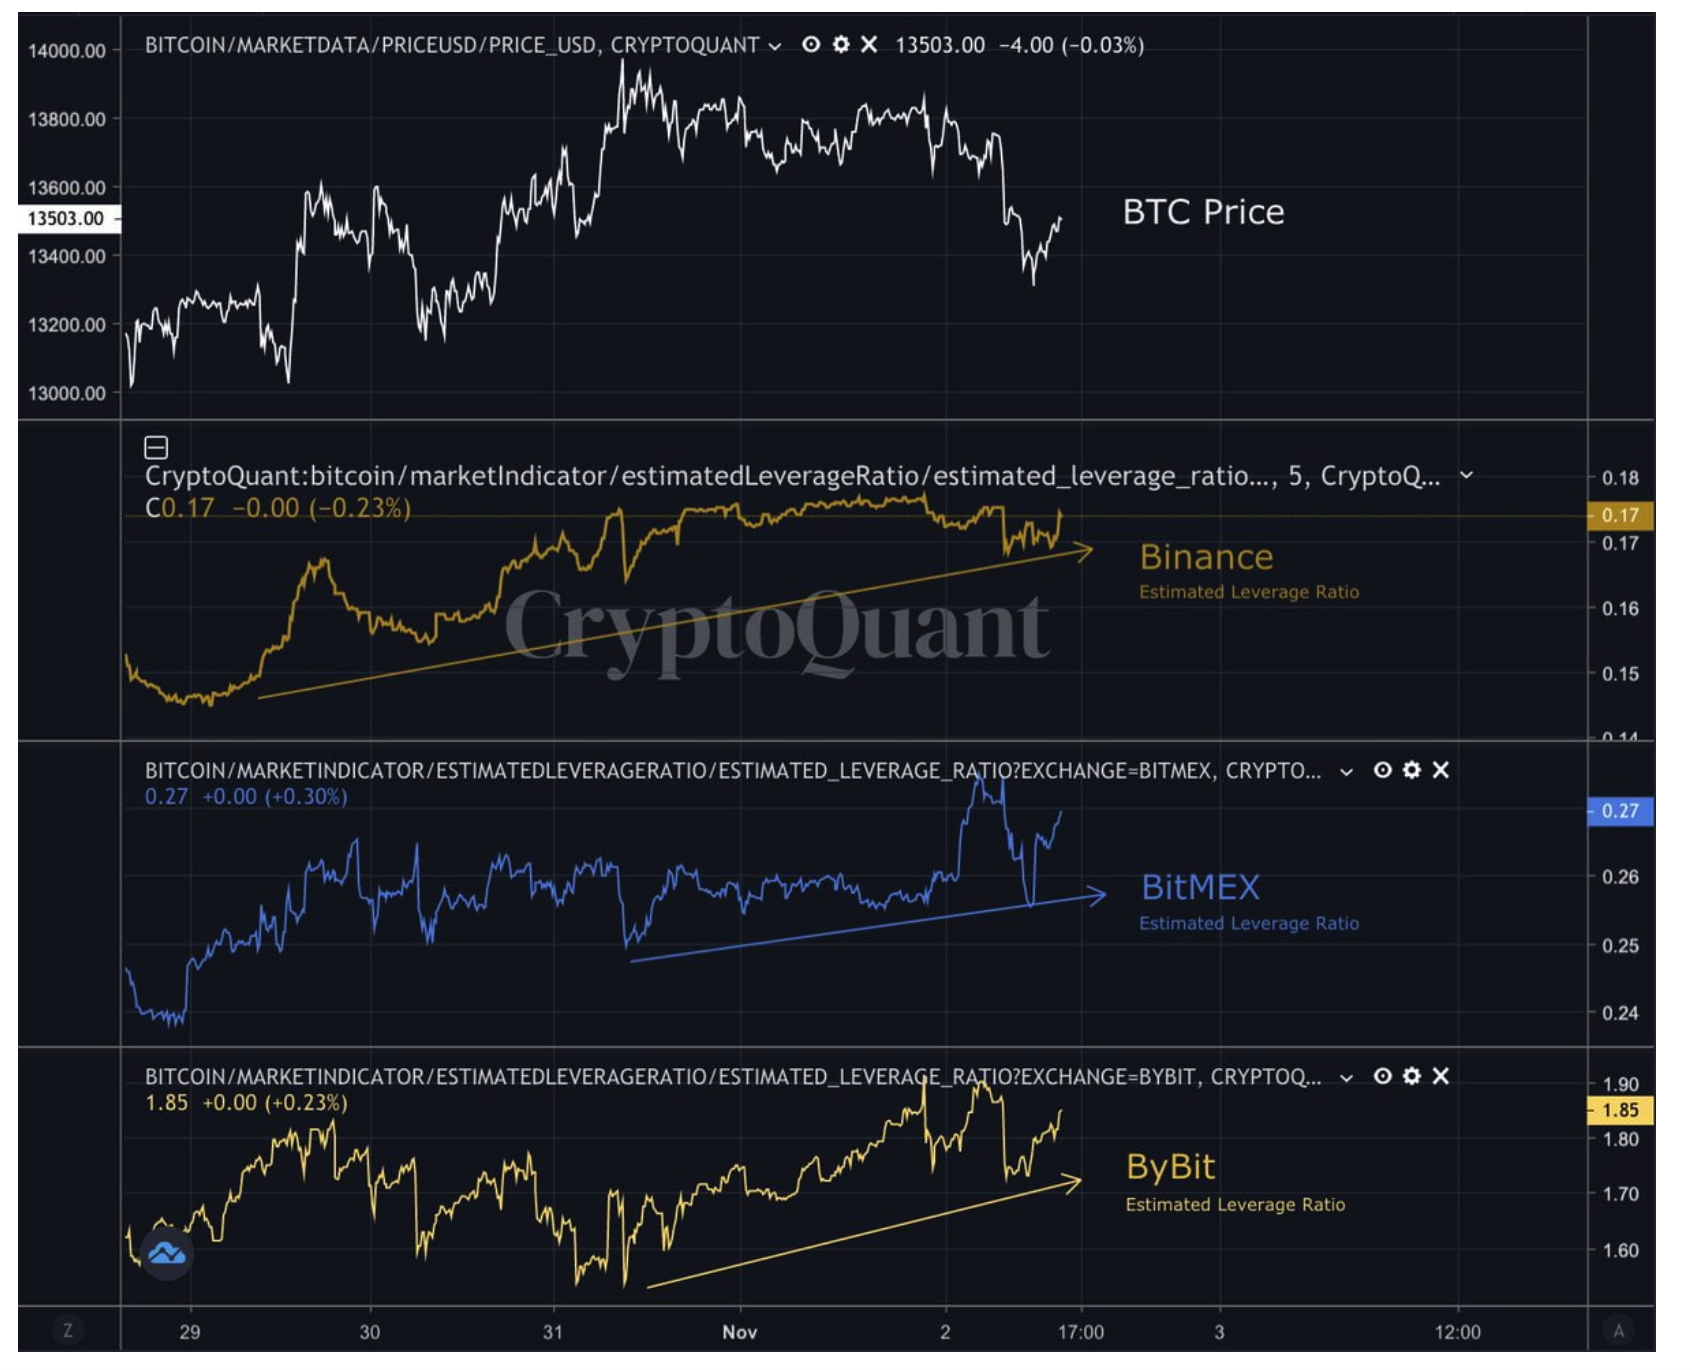 bitcoin-price-has-been-trading-in-overbought-territory-for-a-few-days-now